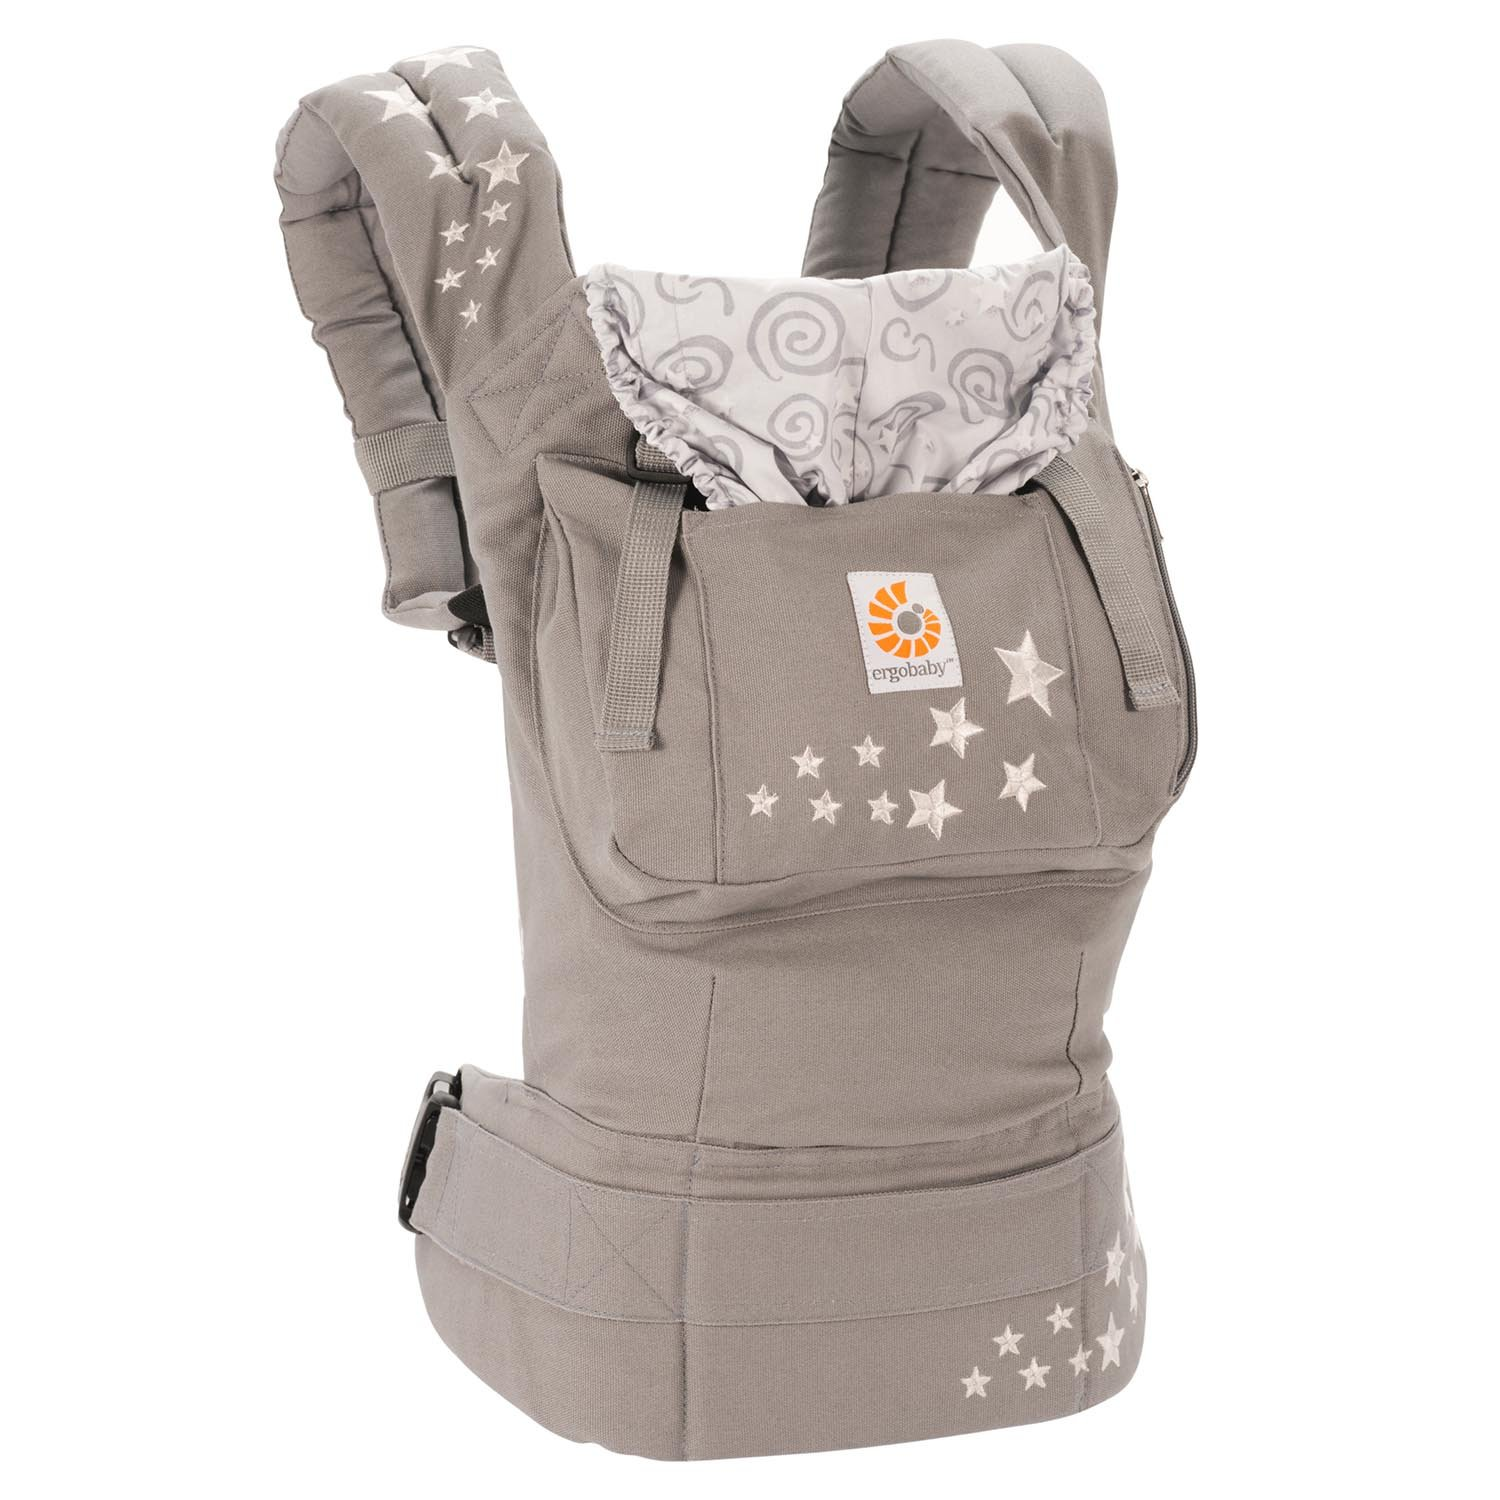 Ergobaby Carrier, Original 3-Position Baby Carrier with Lumbar Support and Storage Pocket, Galaxy Grey